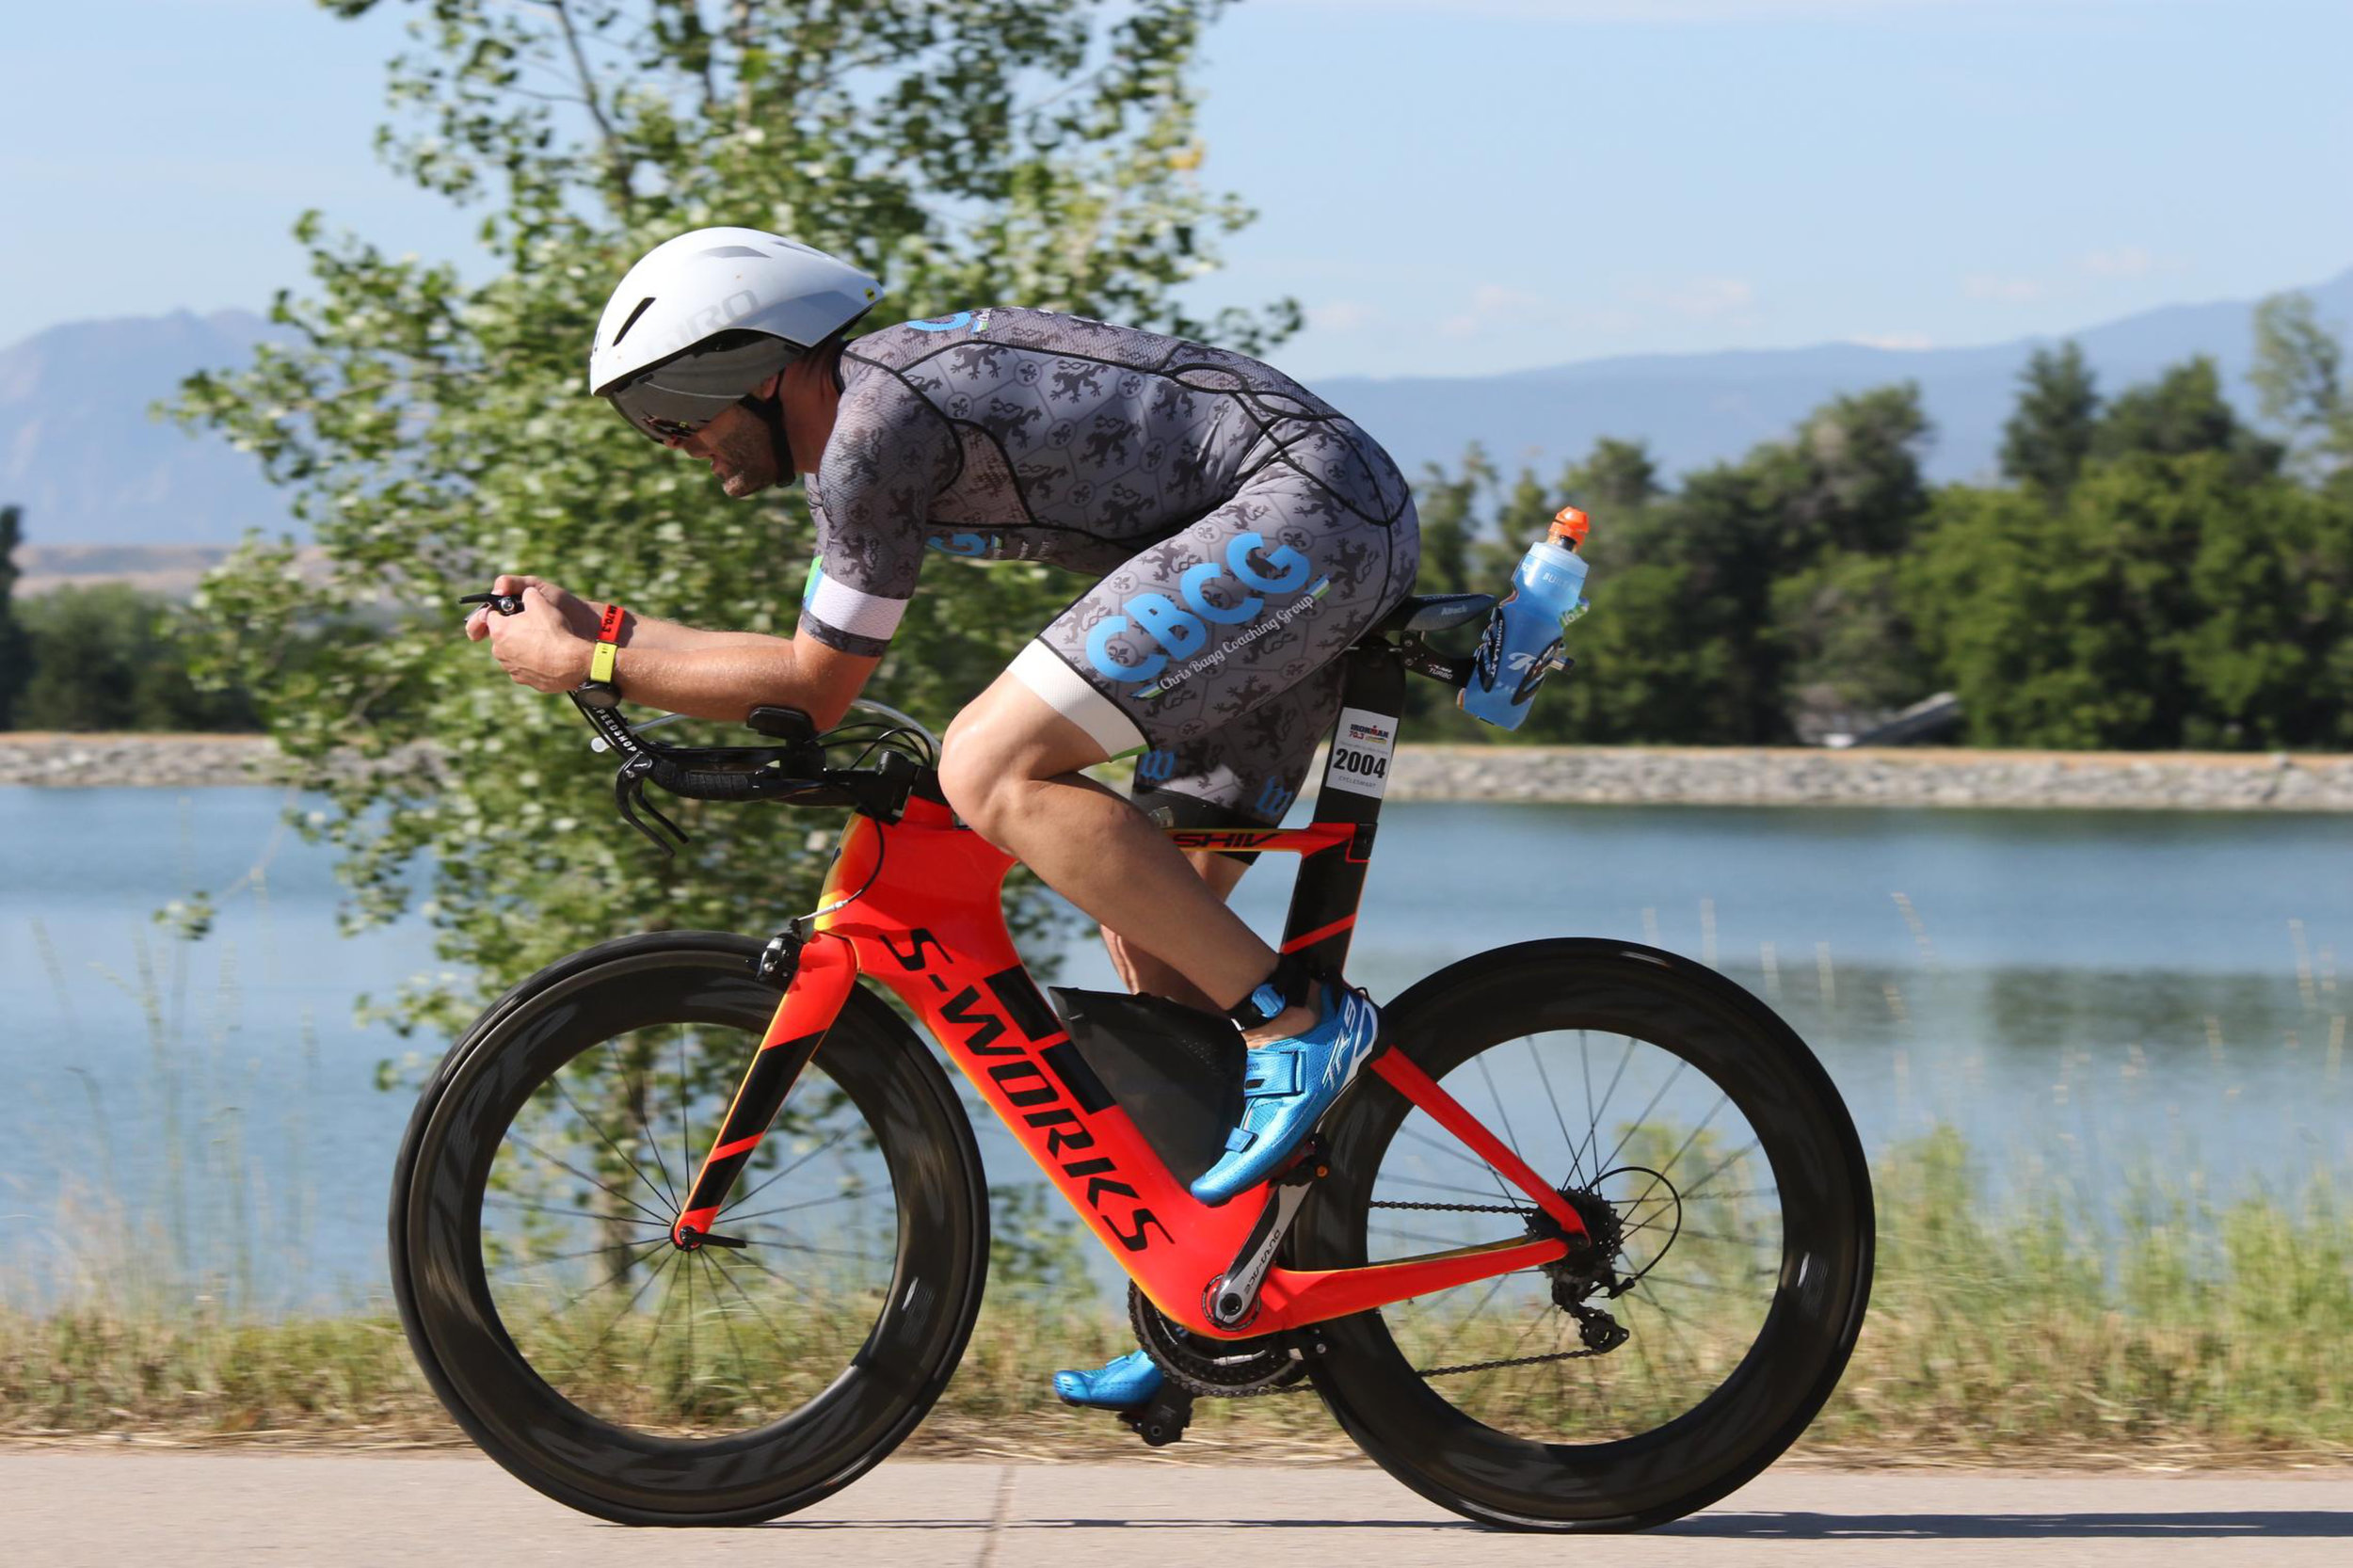 John on course at Boulder 70.3, where he set a bike PR by five minutes